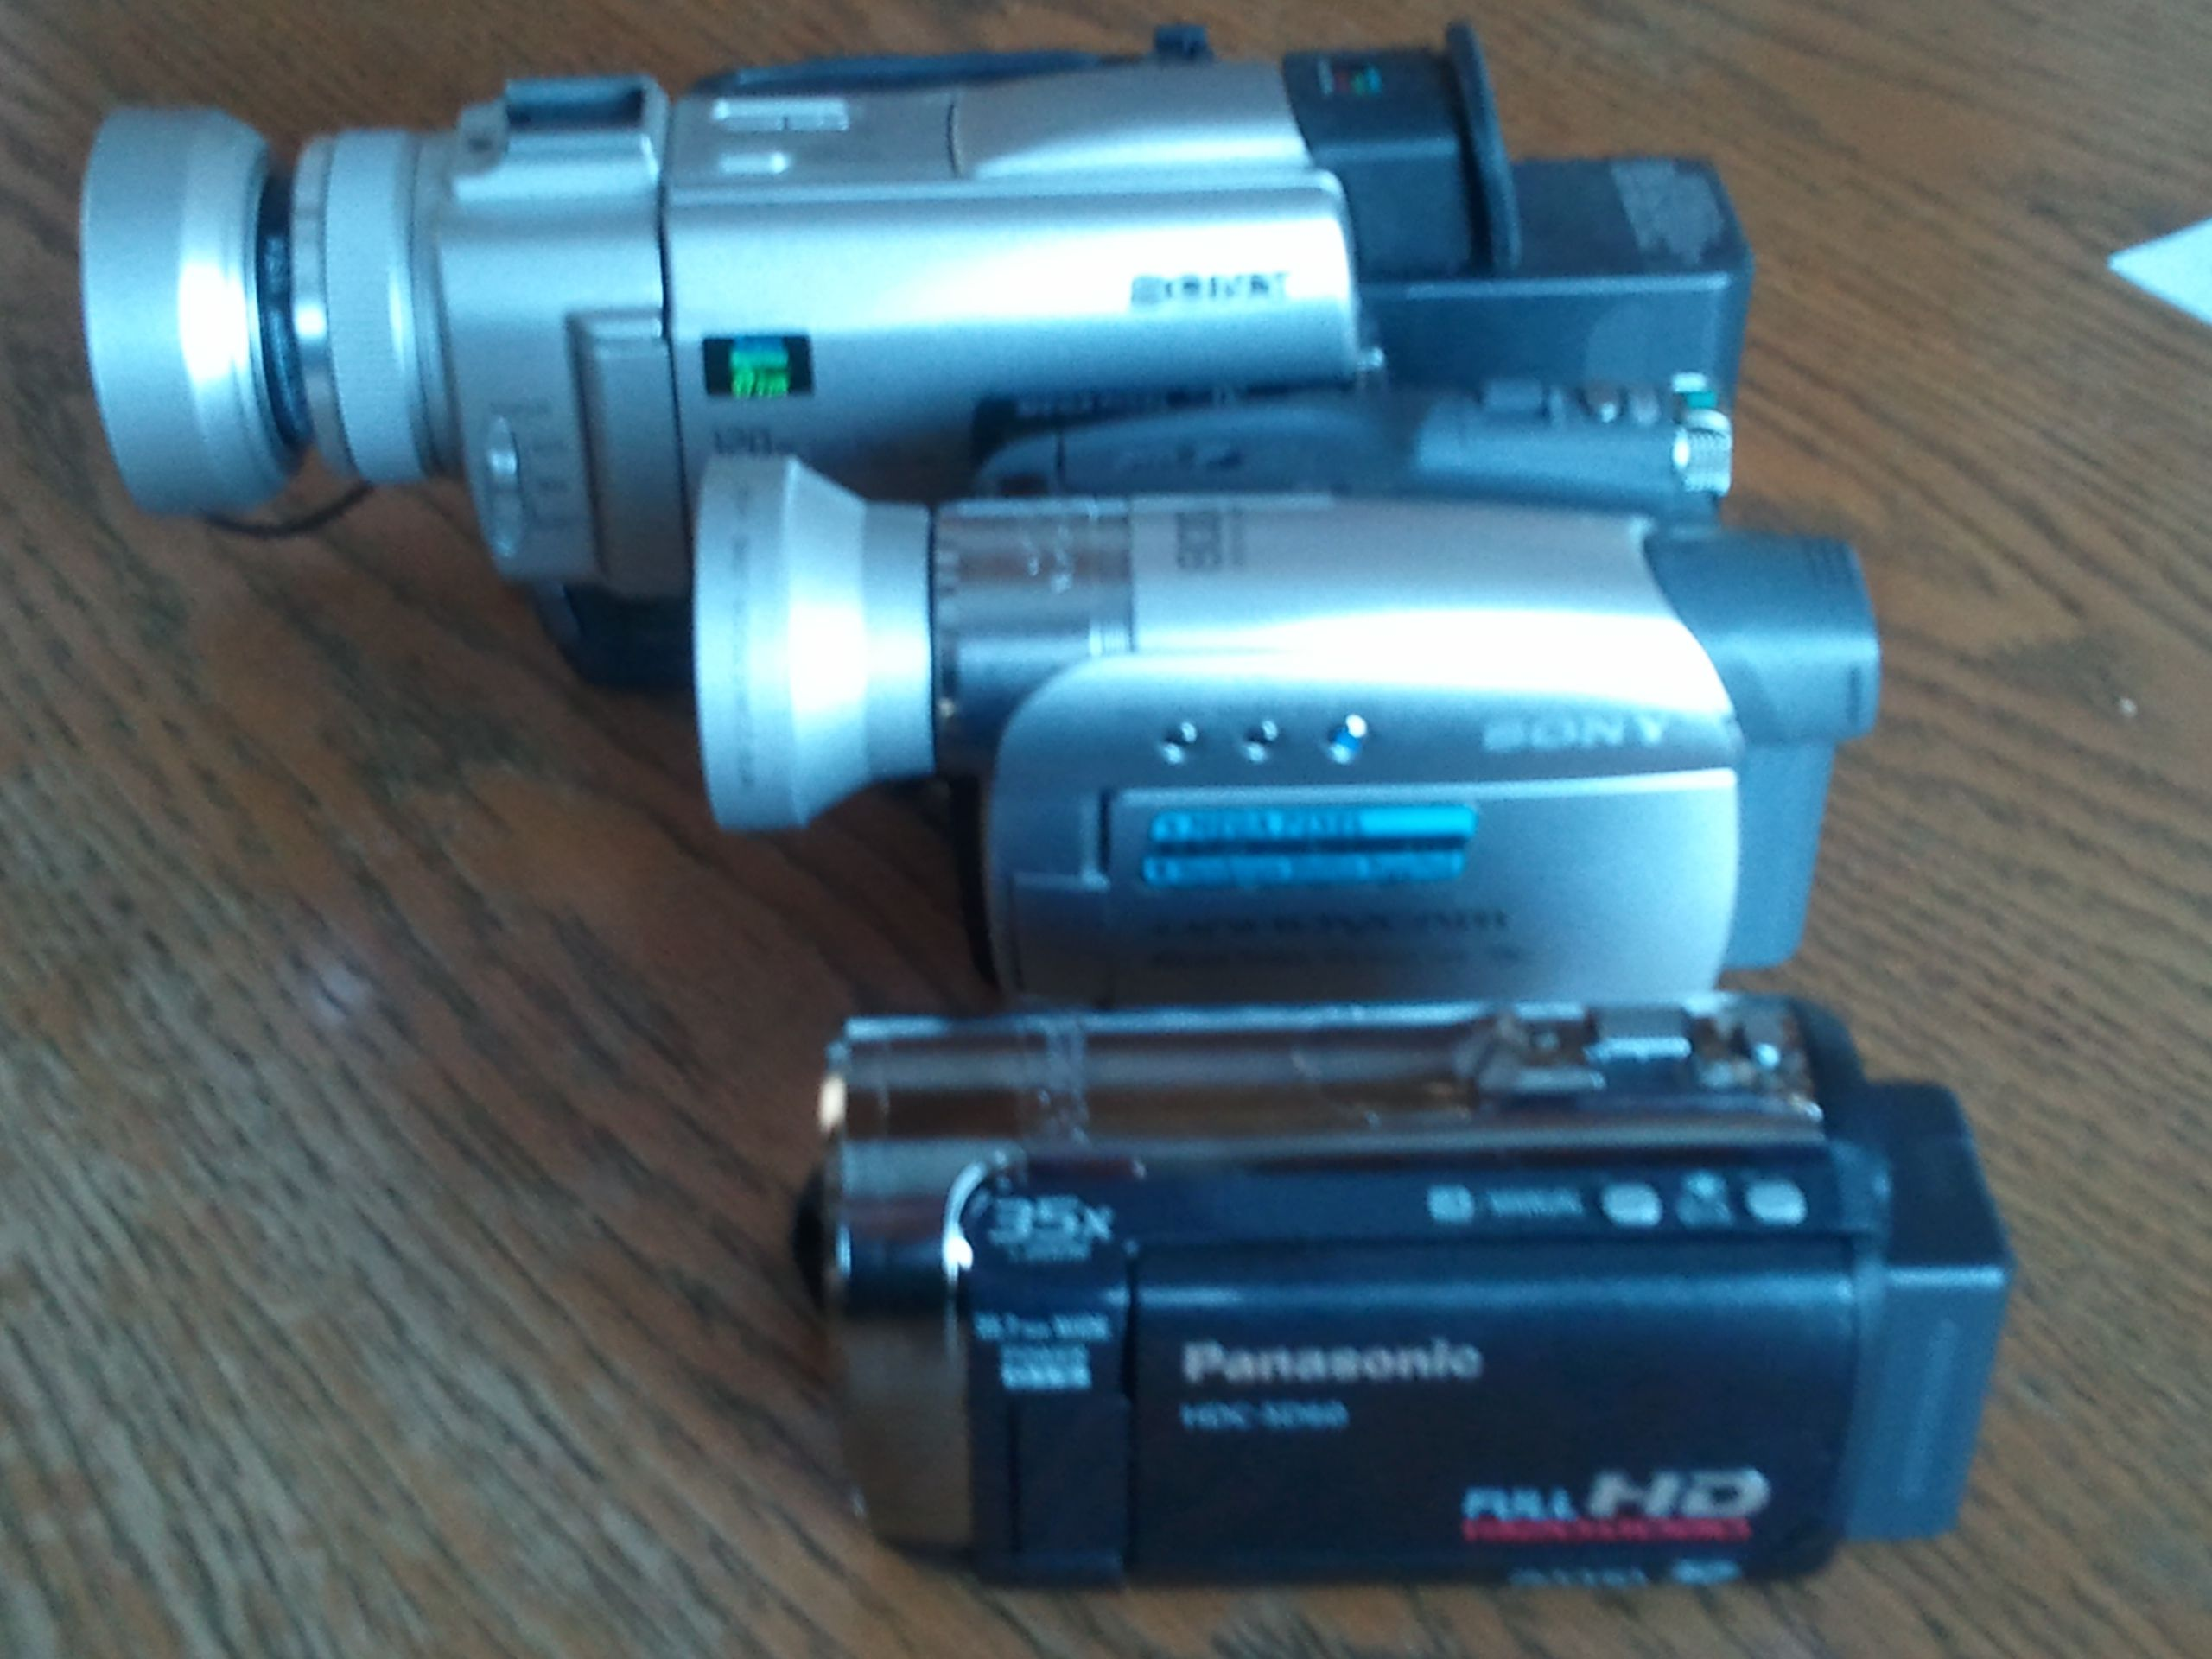 Photo of three of my old camcorders